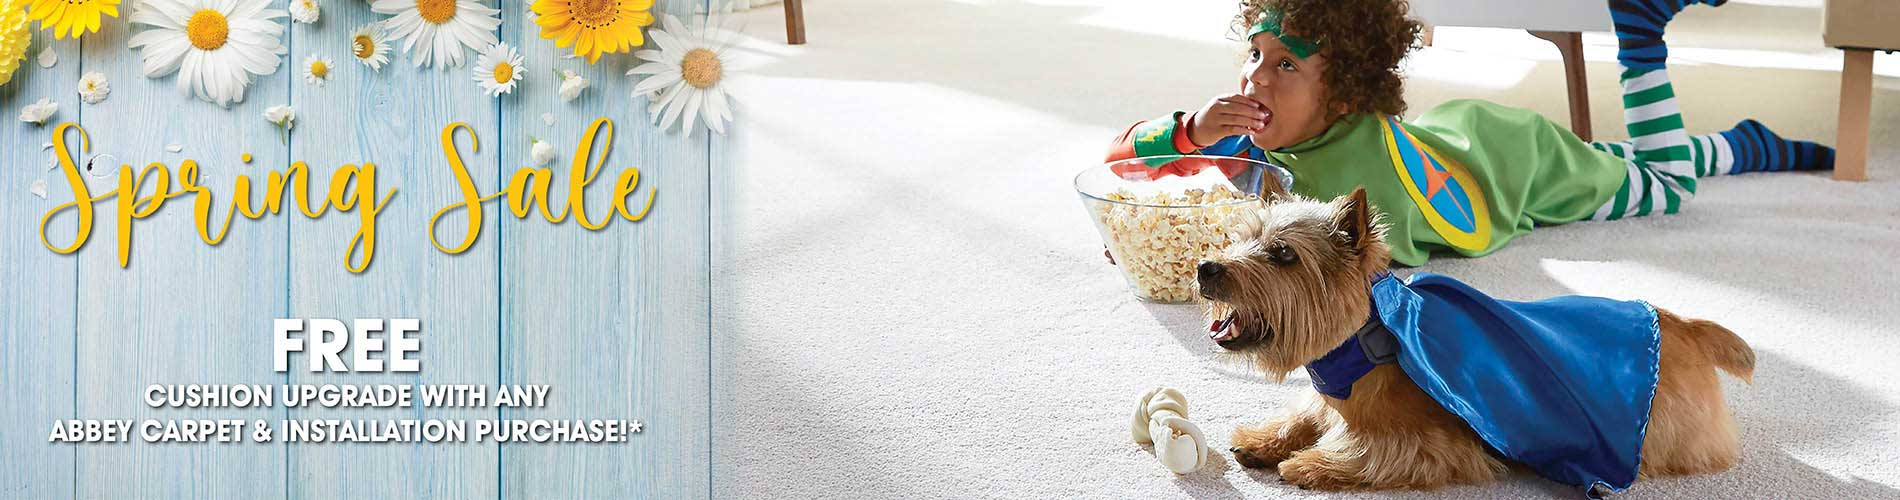 Get free cushion upgrade with any Abbey Carpet & Installation purchase during our spring sale at Seland's in Fergus Falls